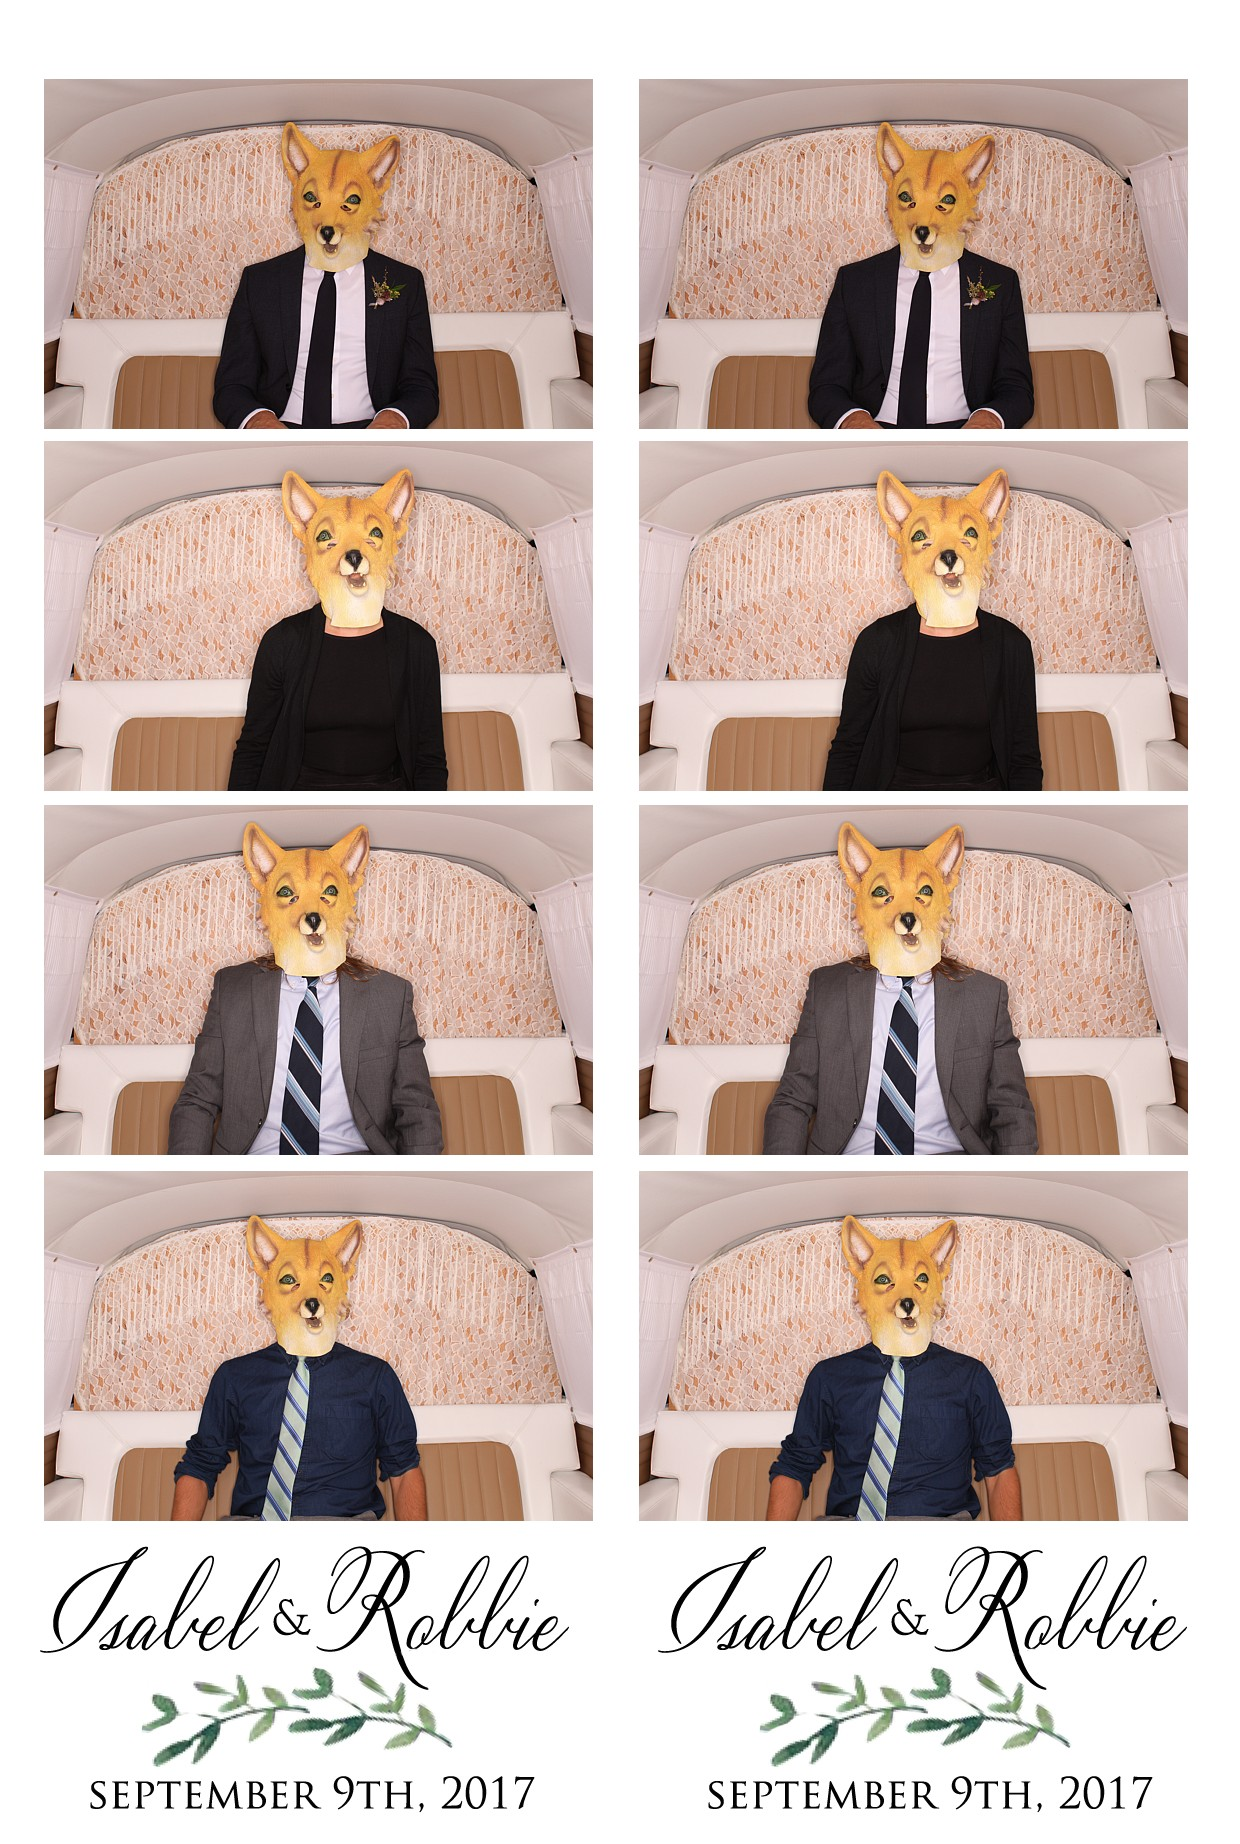 WHY ARE PHOTO STRIPS THE BEST PICK?